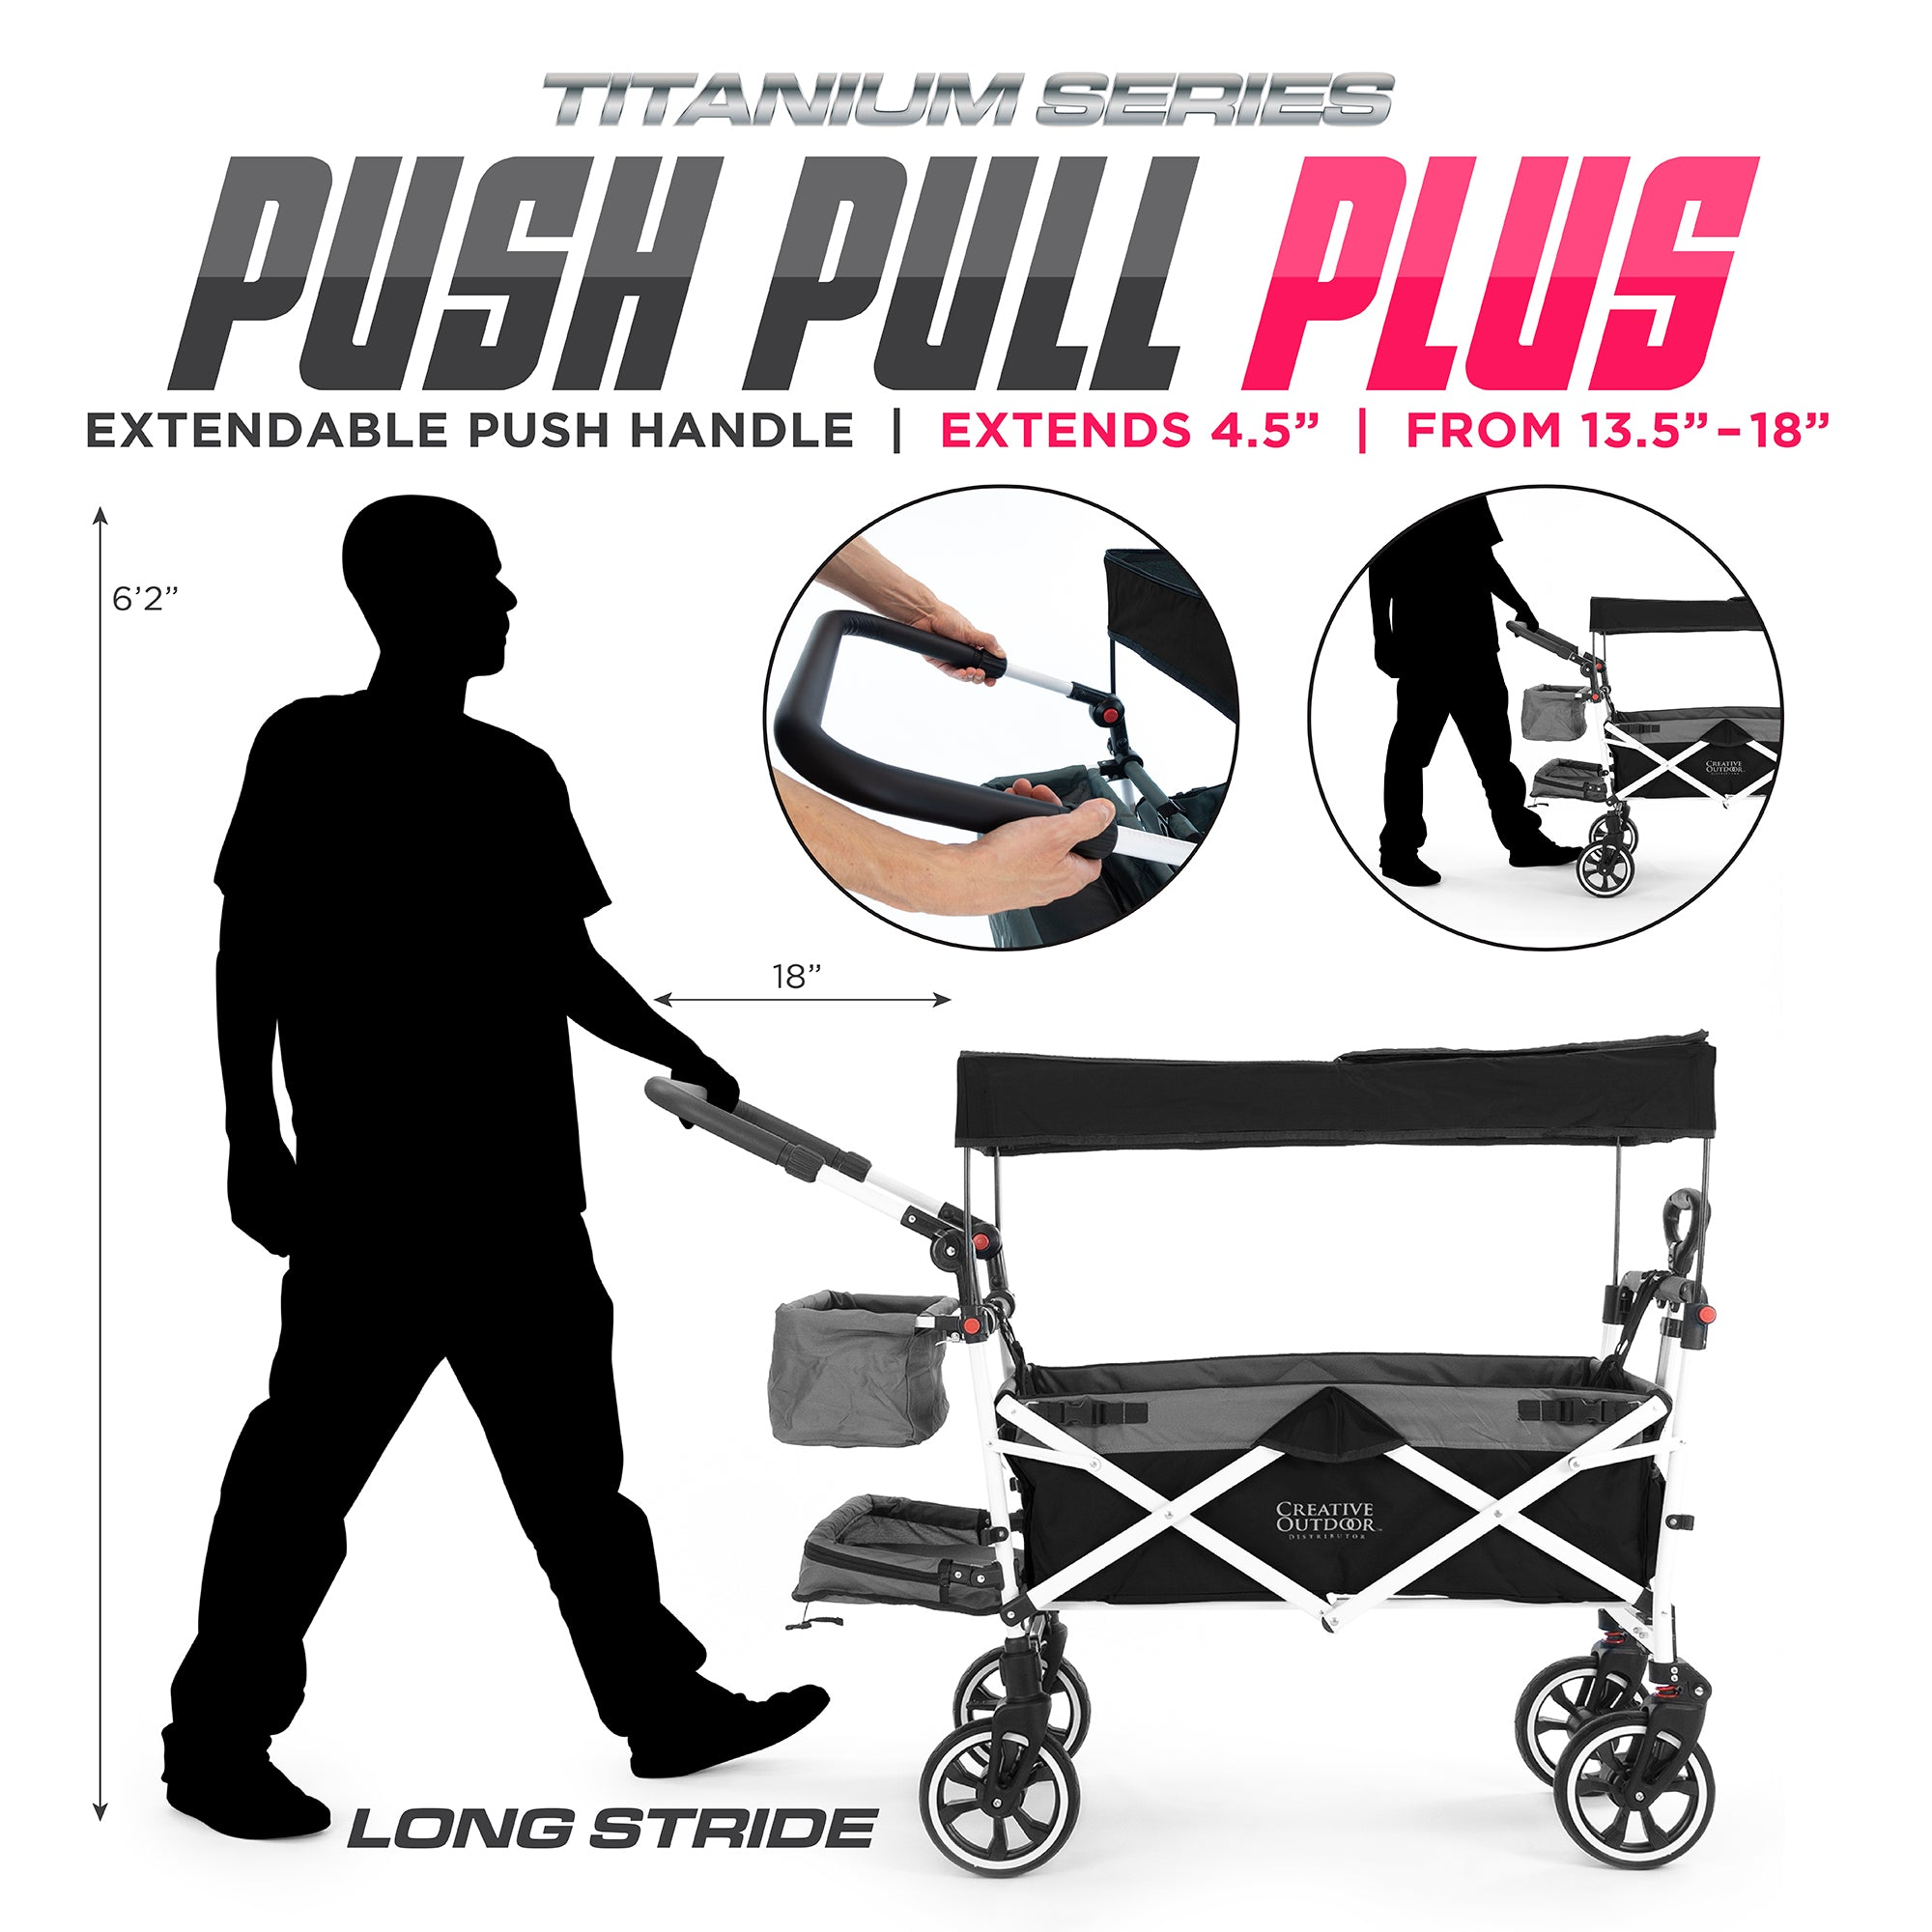 Push Pull Folding Stroller Wagon Titanium Series Plus Extendable Handle